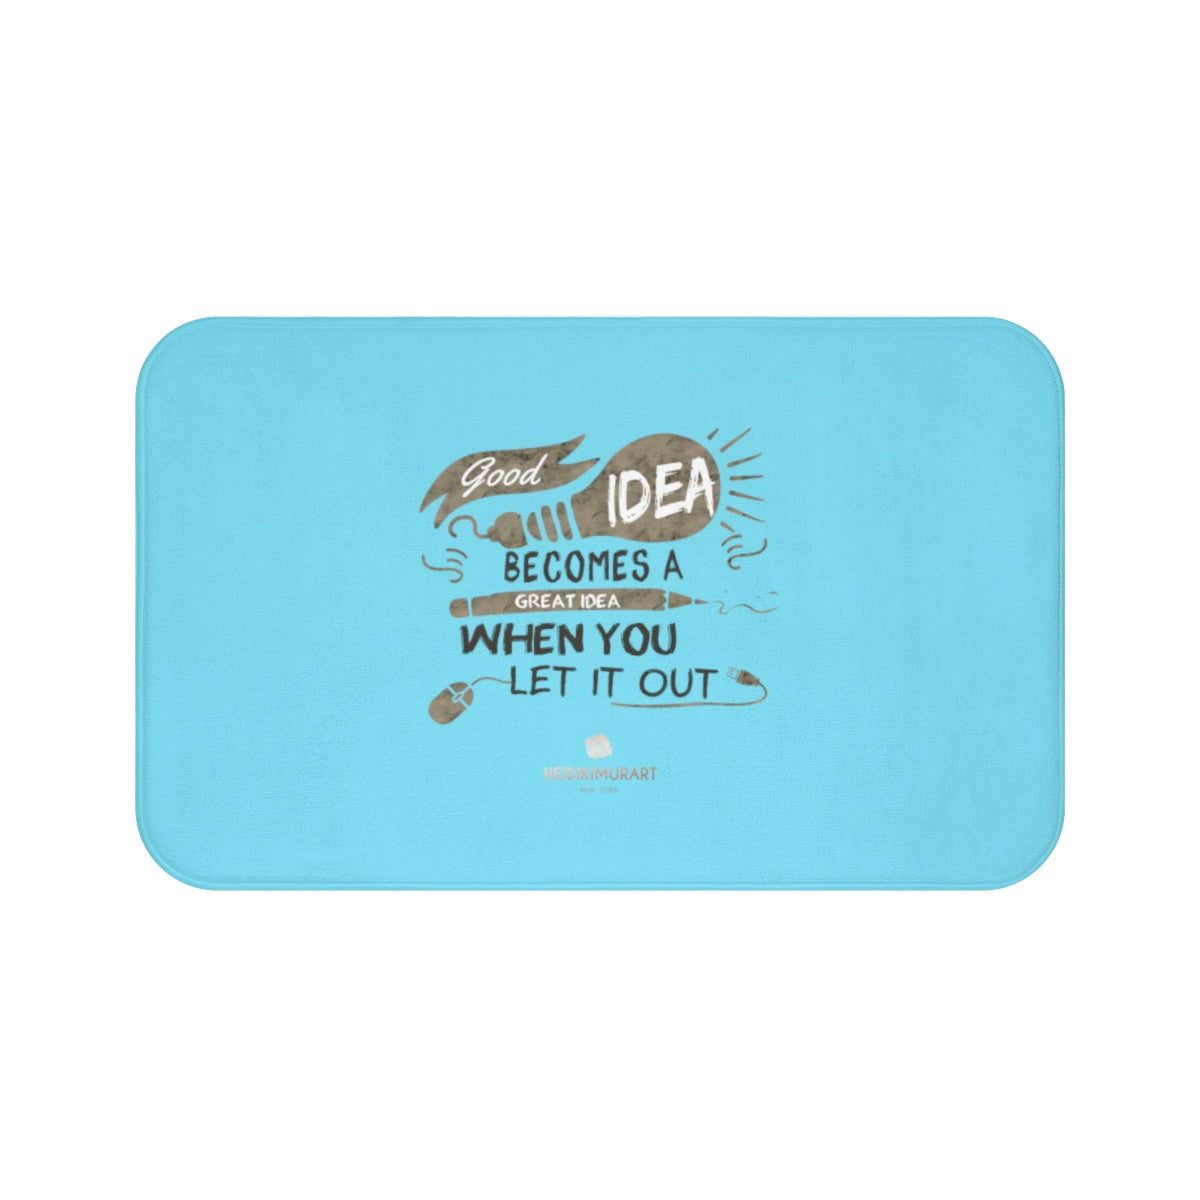 "Sky Blue ""Good Idea Becomes A Great Idea When You Let It Out"", Inspirational Bath Mat- Printed in USA-Bath Mat-Large 34x21-Heidi Kimura Art LLC"